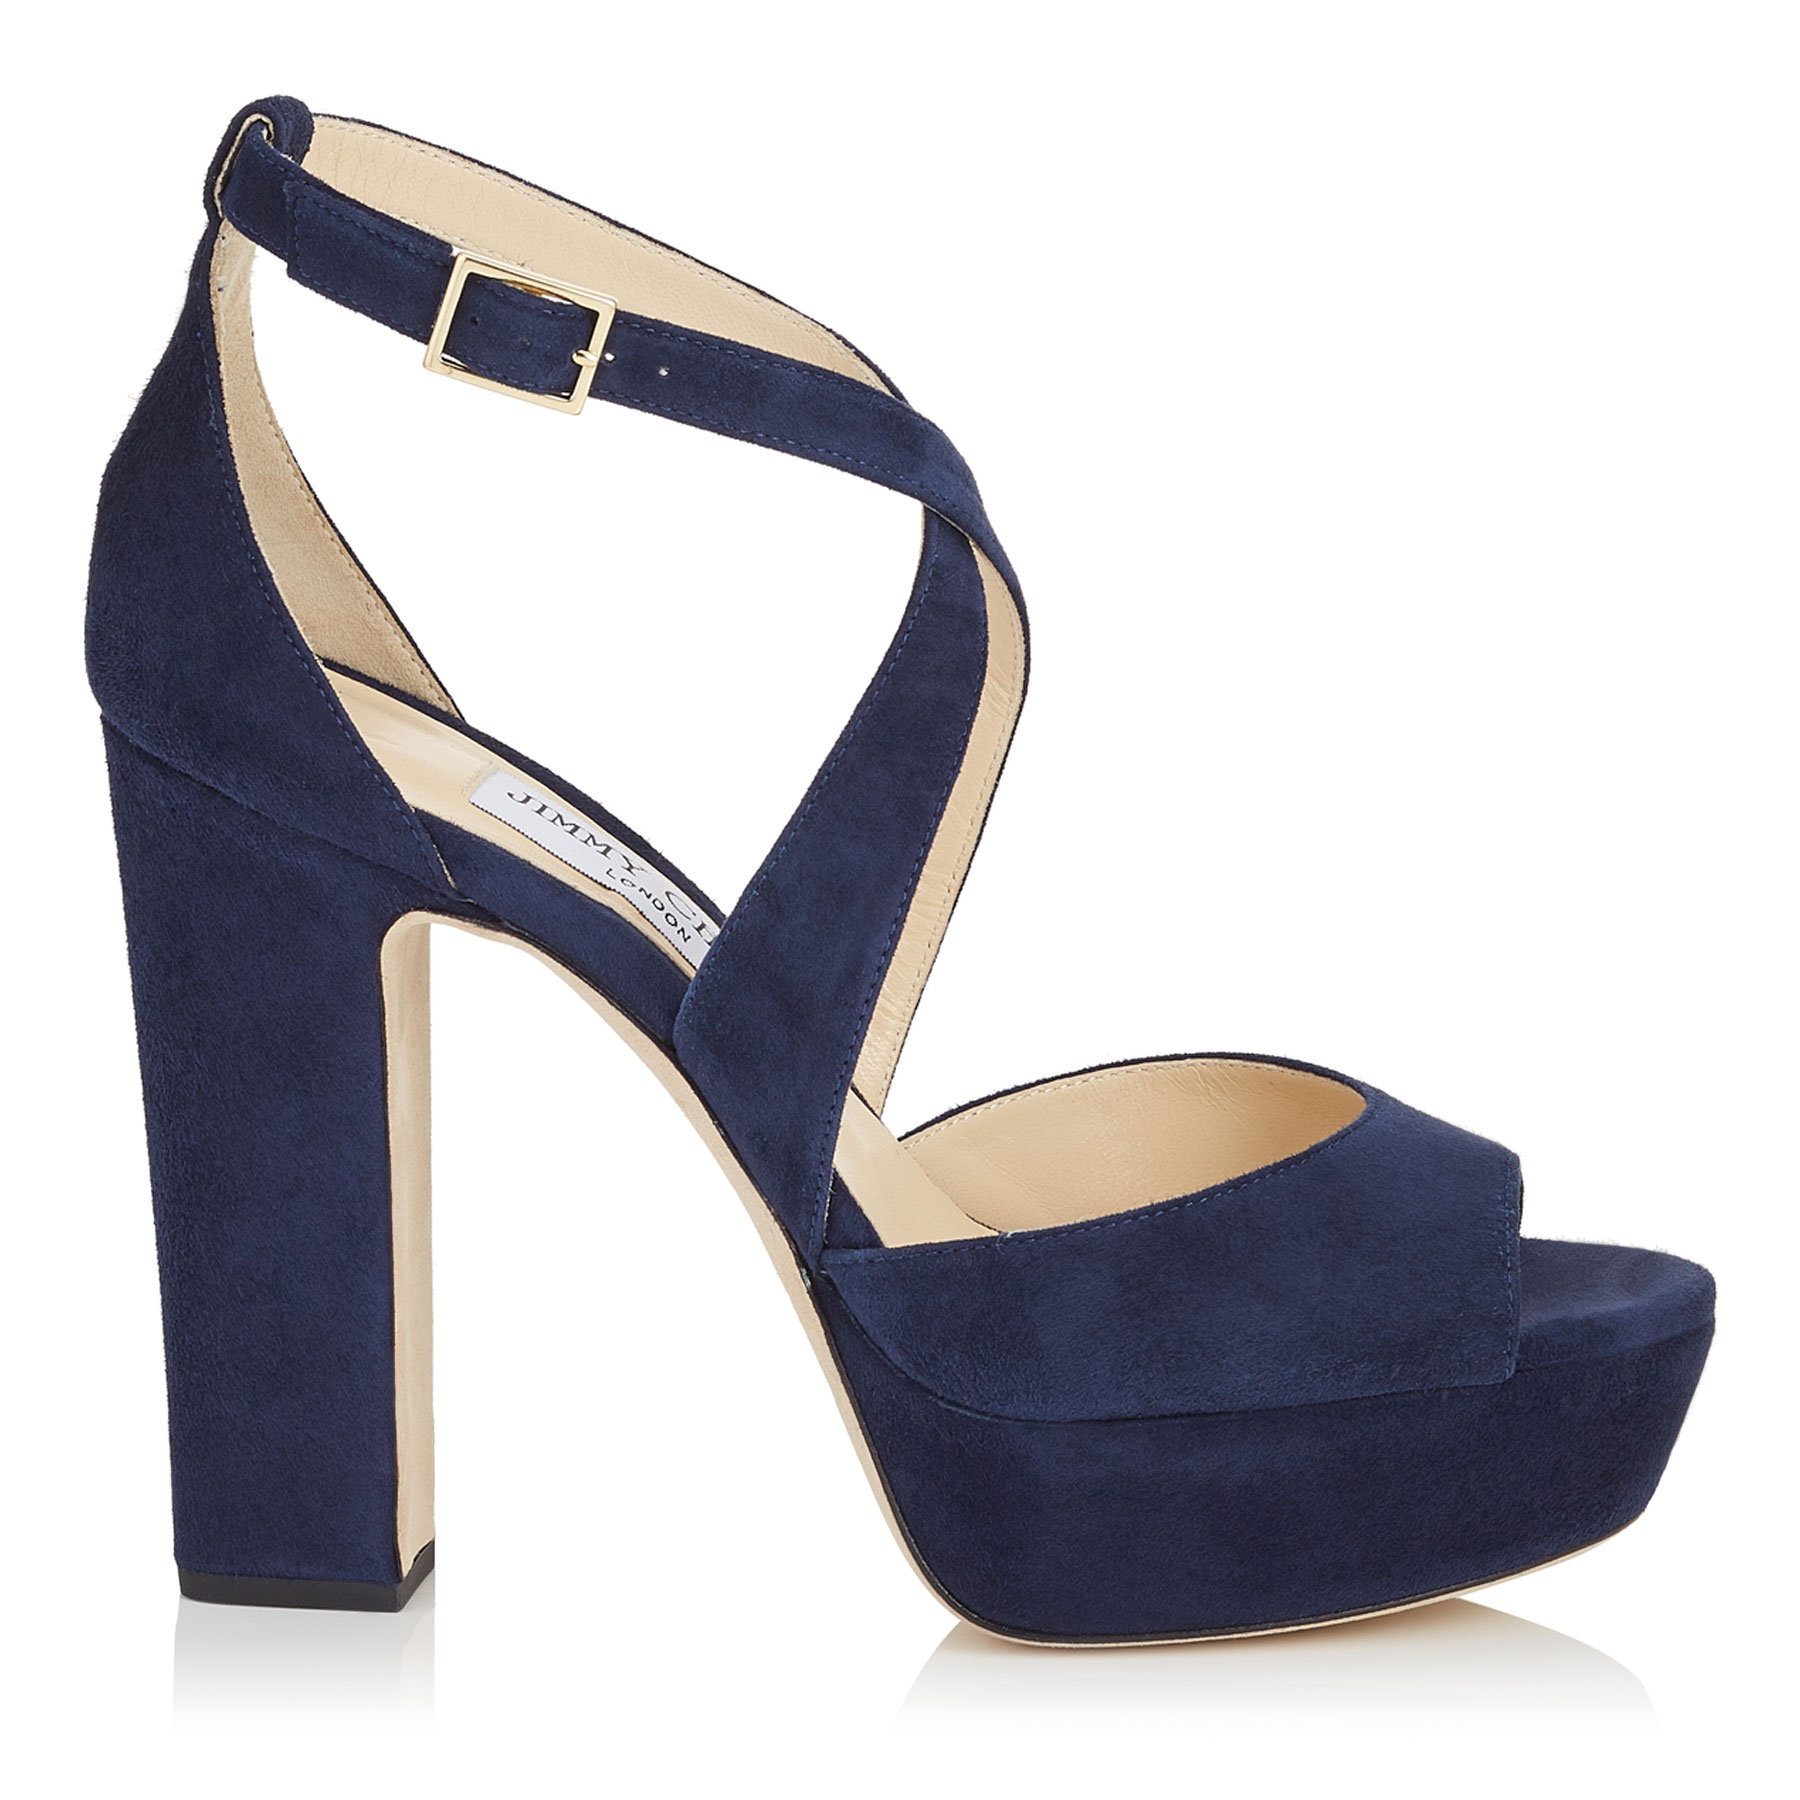 APRIL 120 Navy Suede Platform Sandals by Jimmy Choo